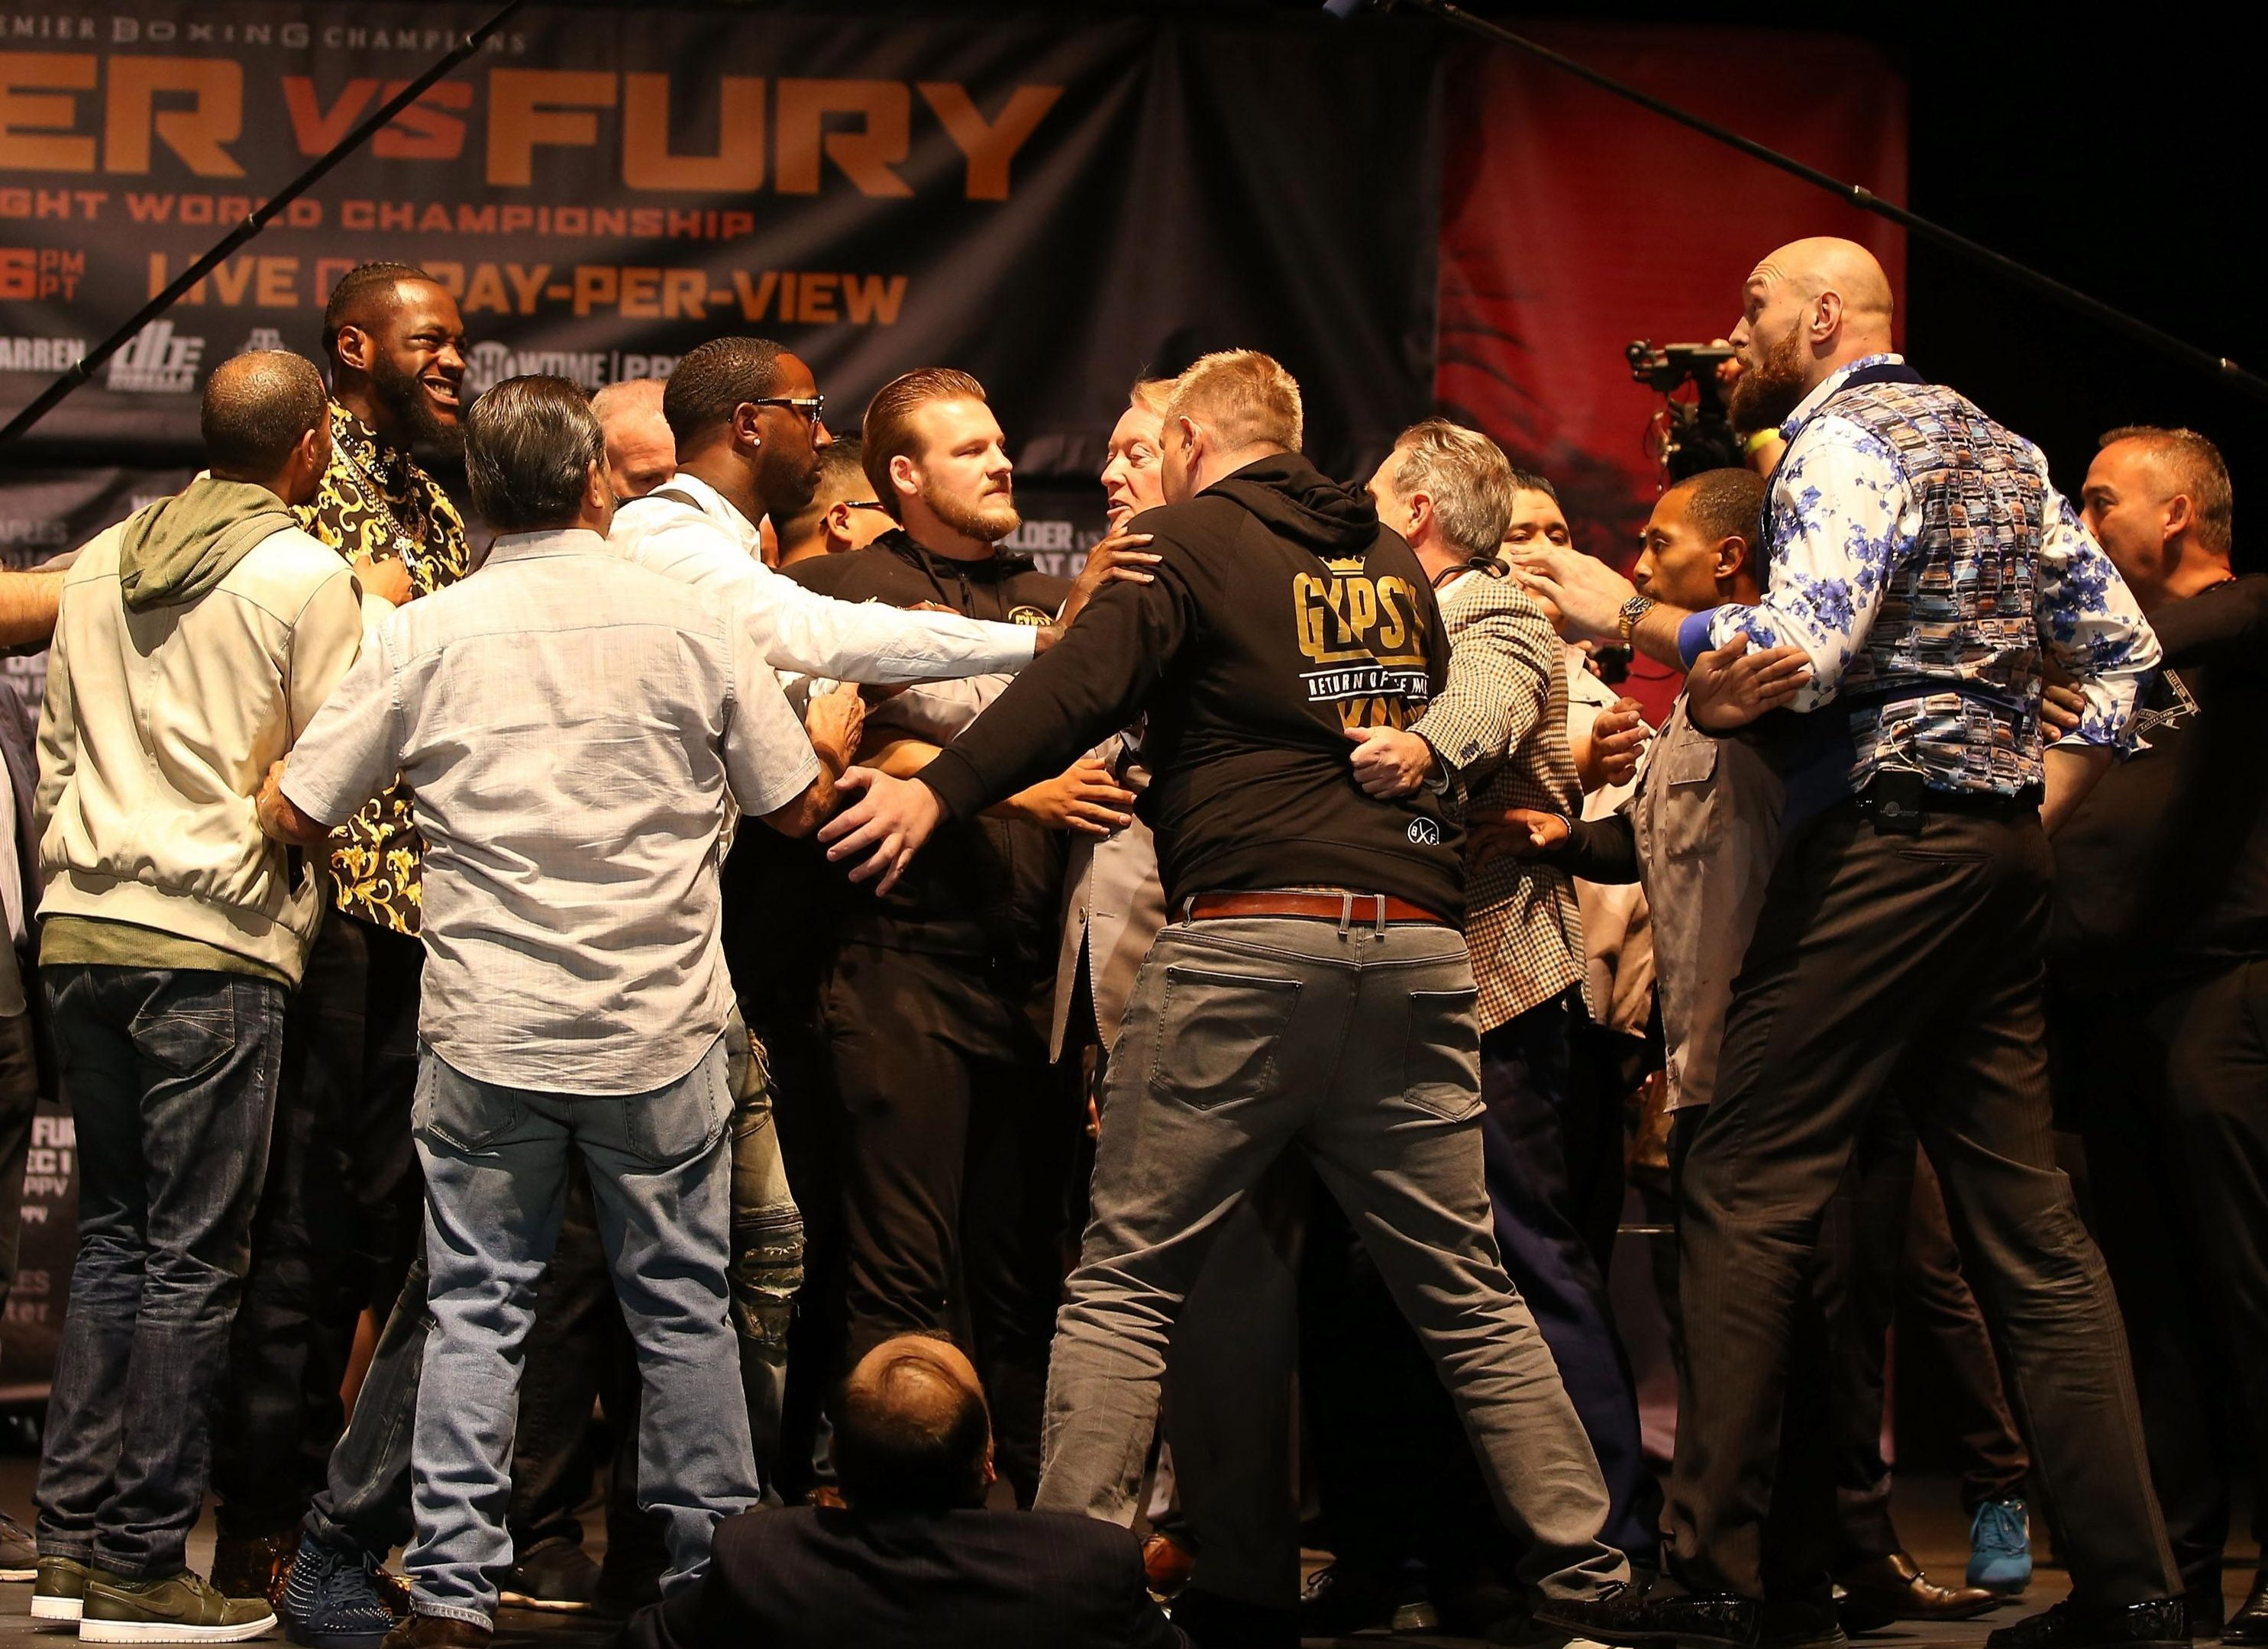 The heavyweights had to be pulled apart on stage at LA's Staples Centre